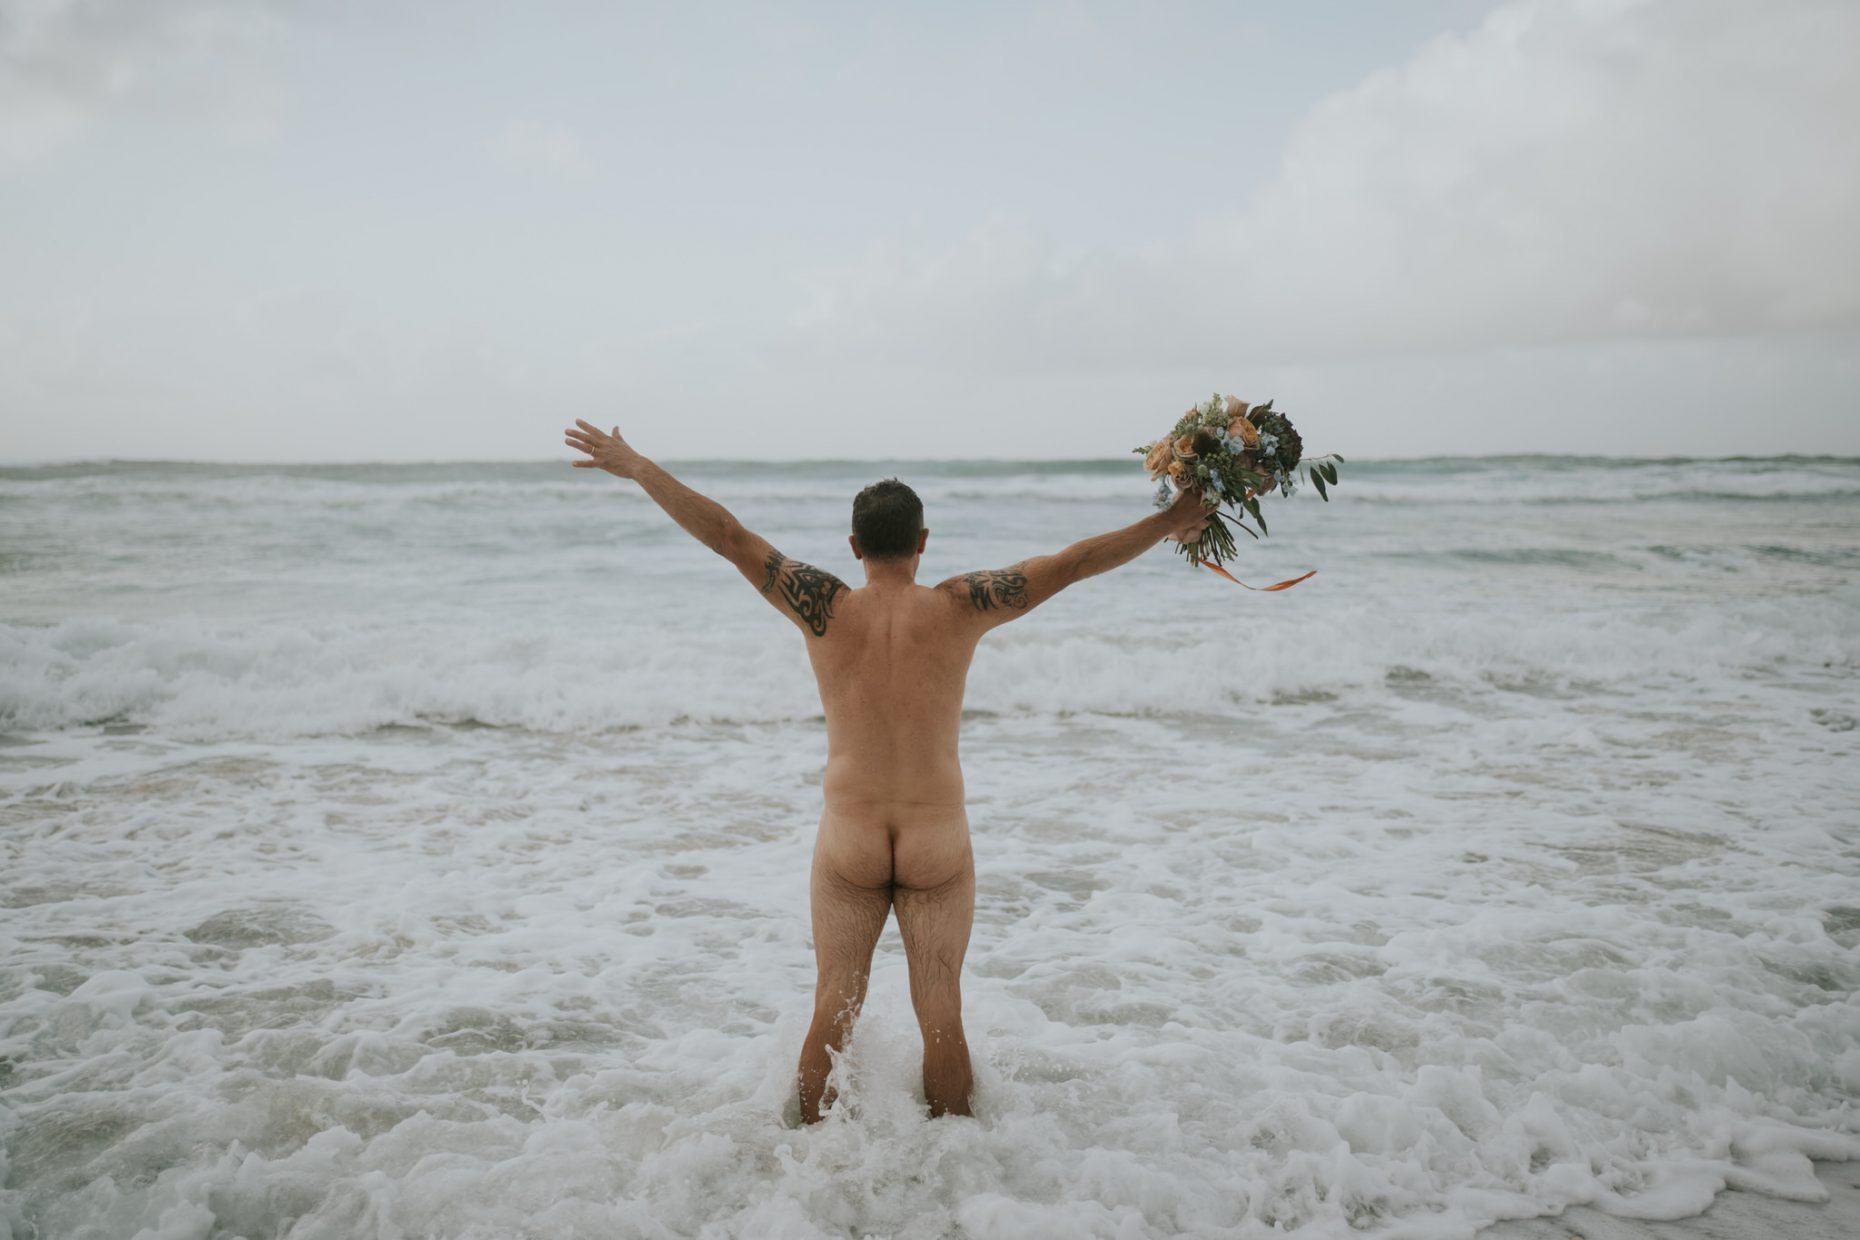 a groom runs naked into the sea as the wave splashes him and he holds his brides bouquet in the air